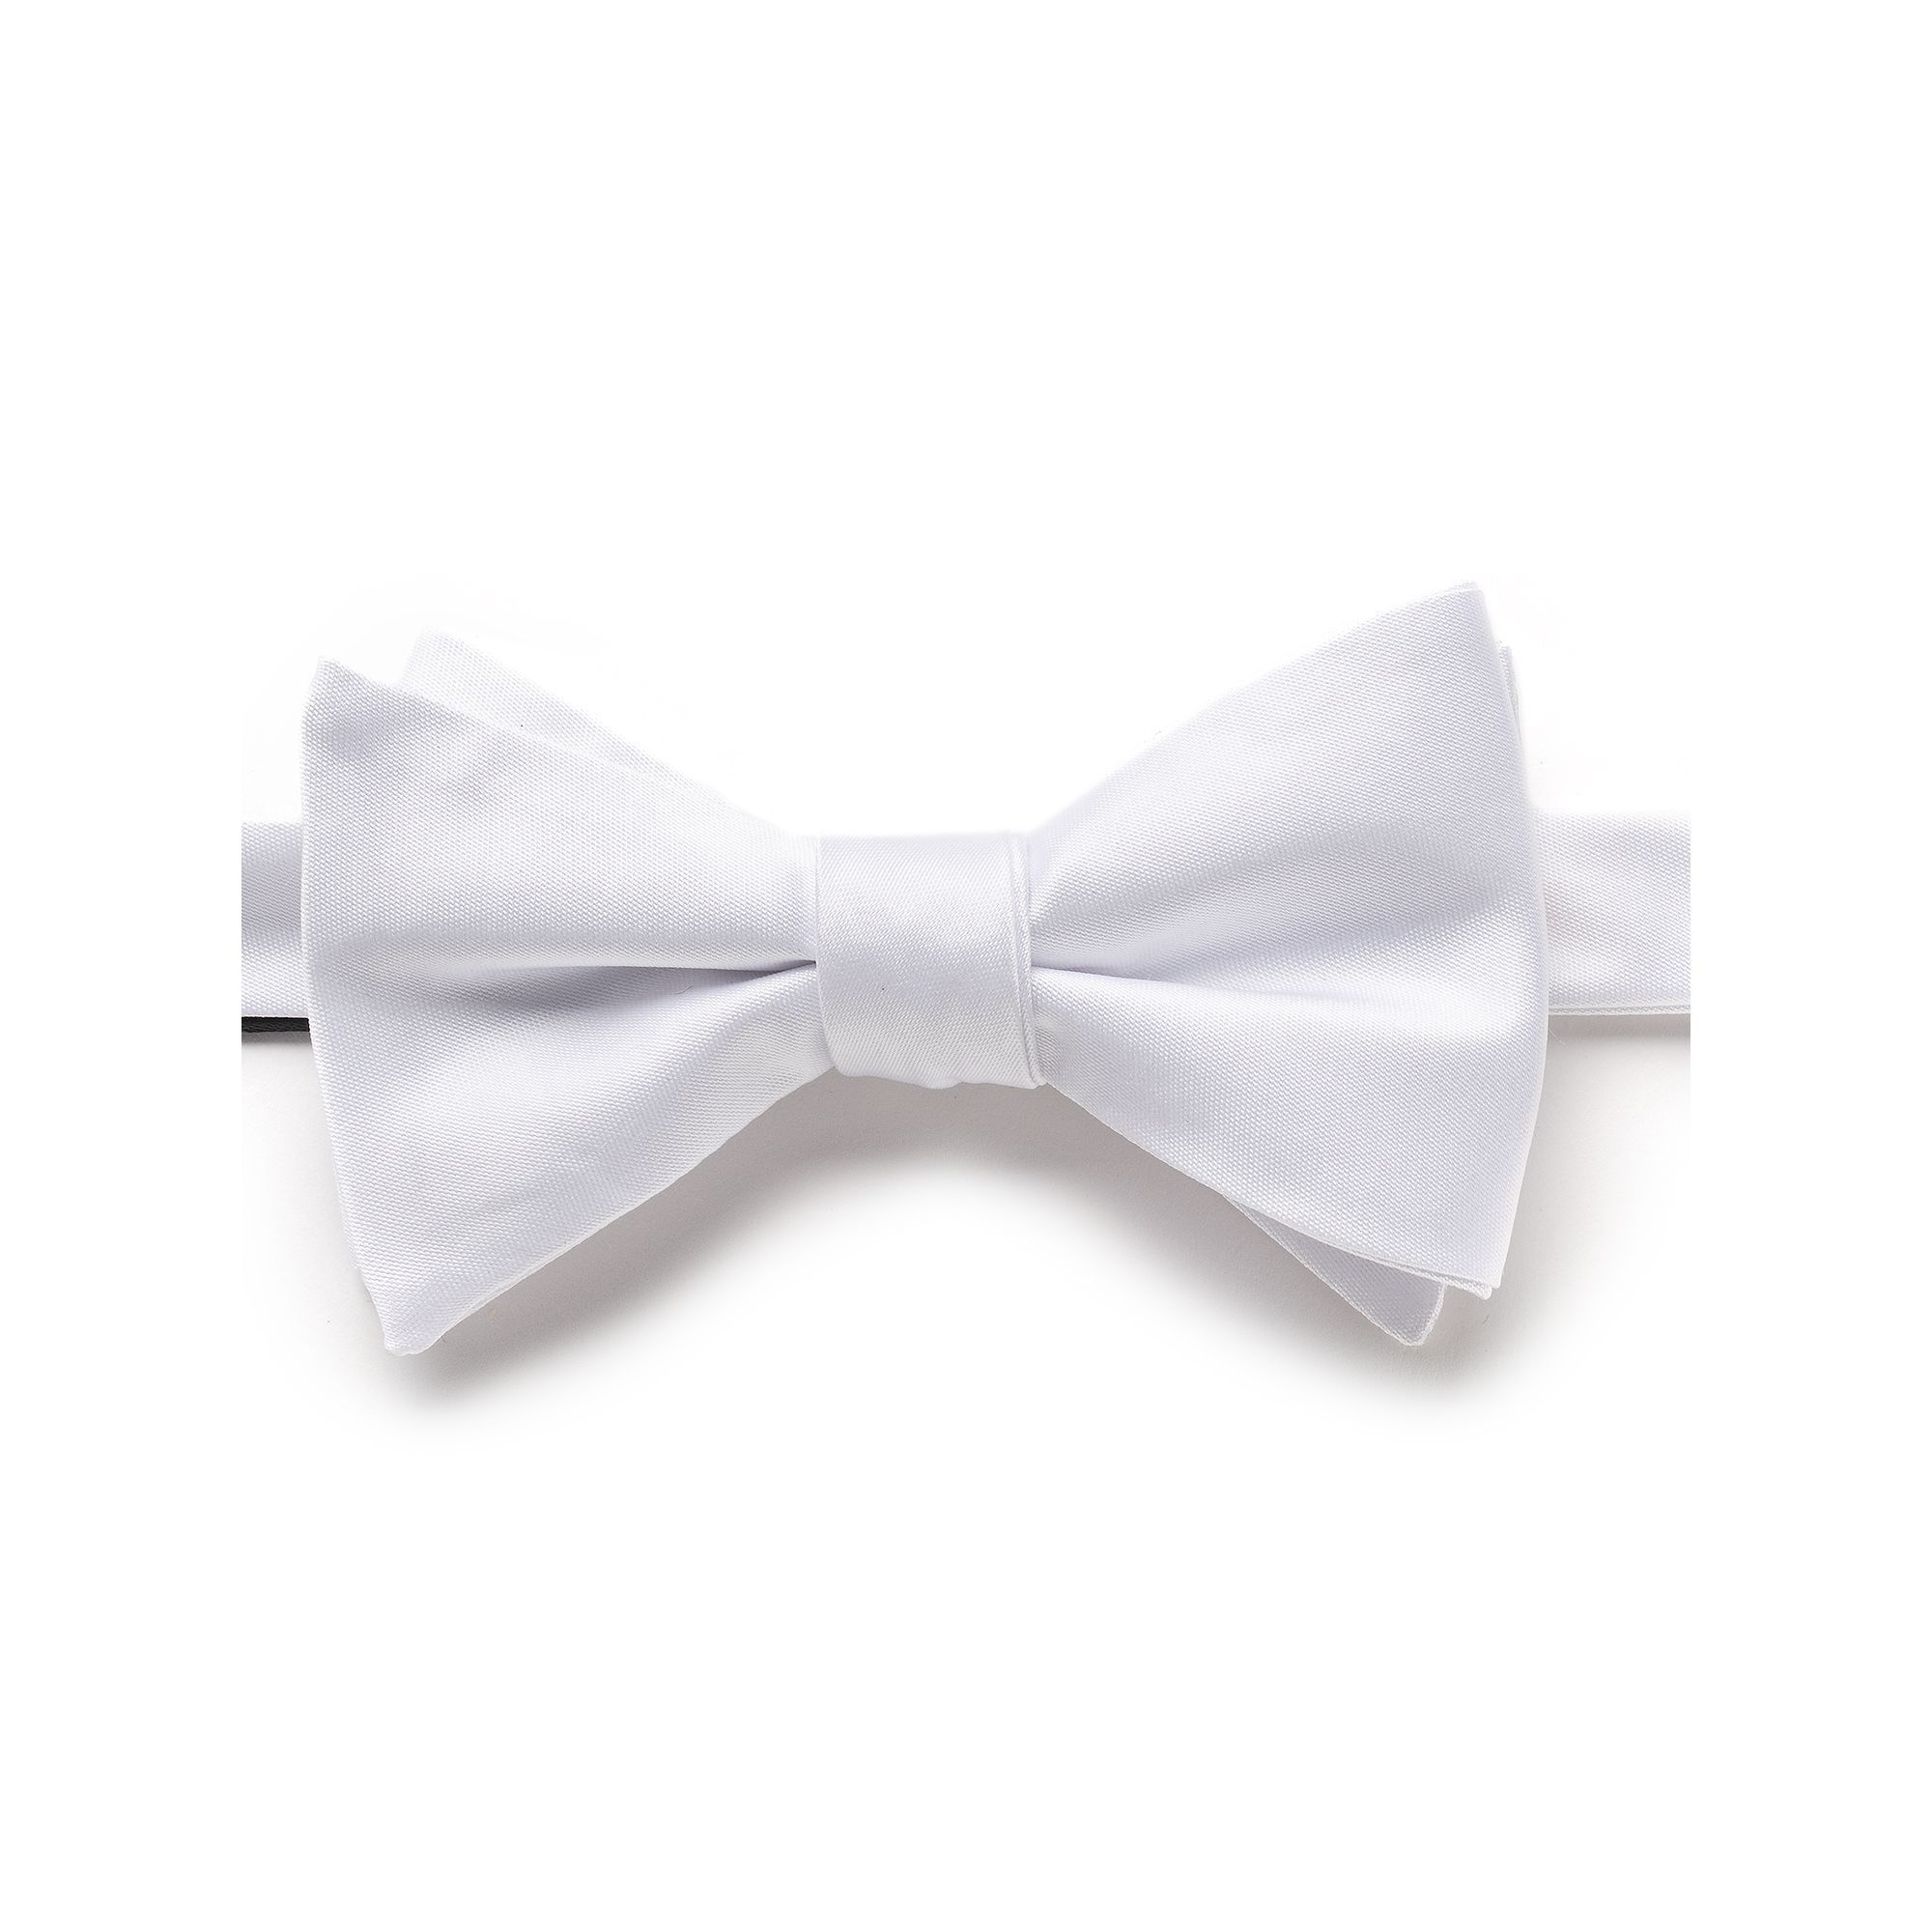 999d3cd82756 Bow Tie Tuesday Solid Satin Pre-Tied Bow Tie - Men | Products | Tie ...